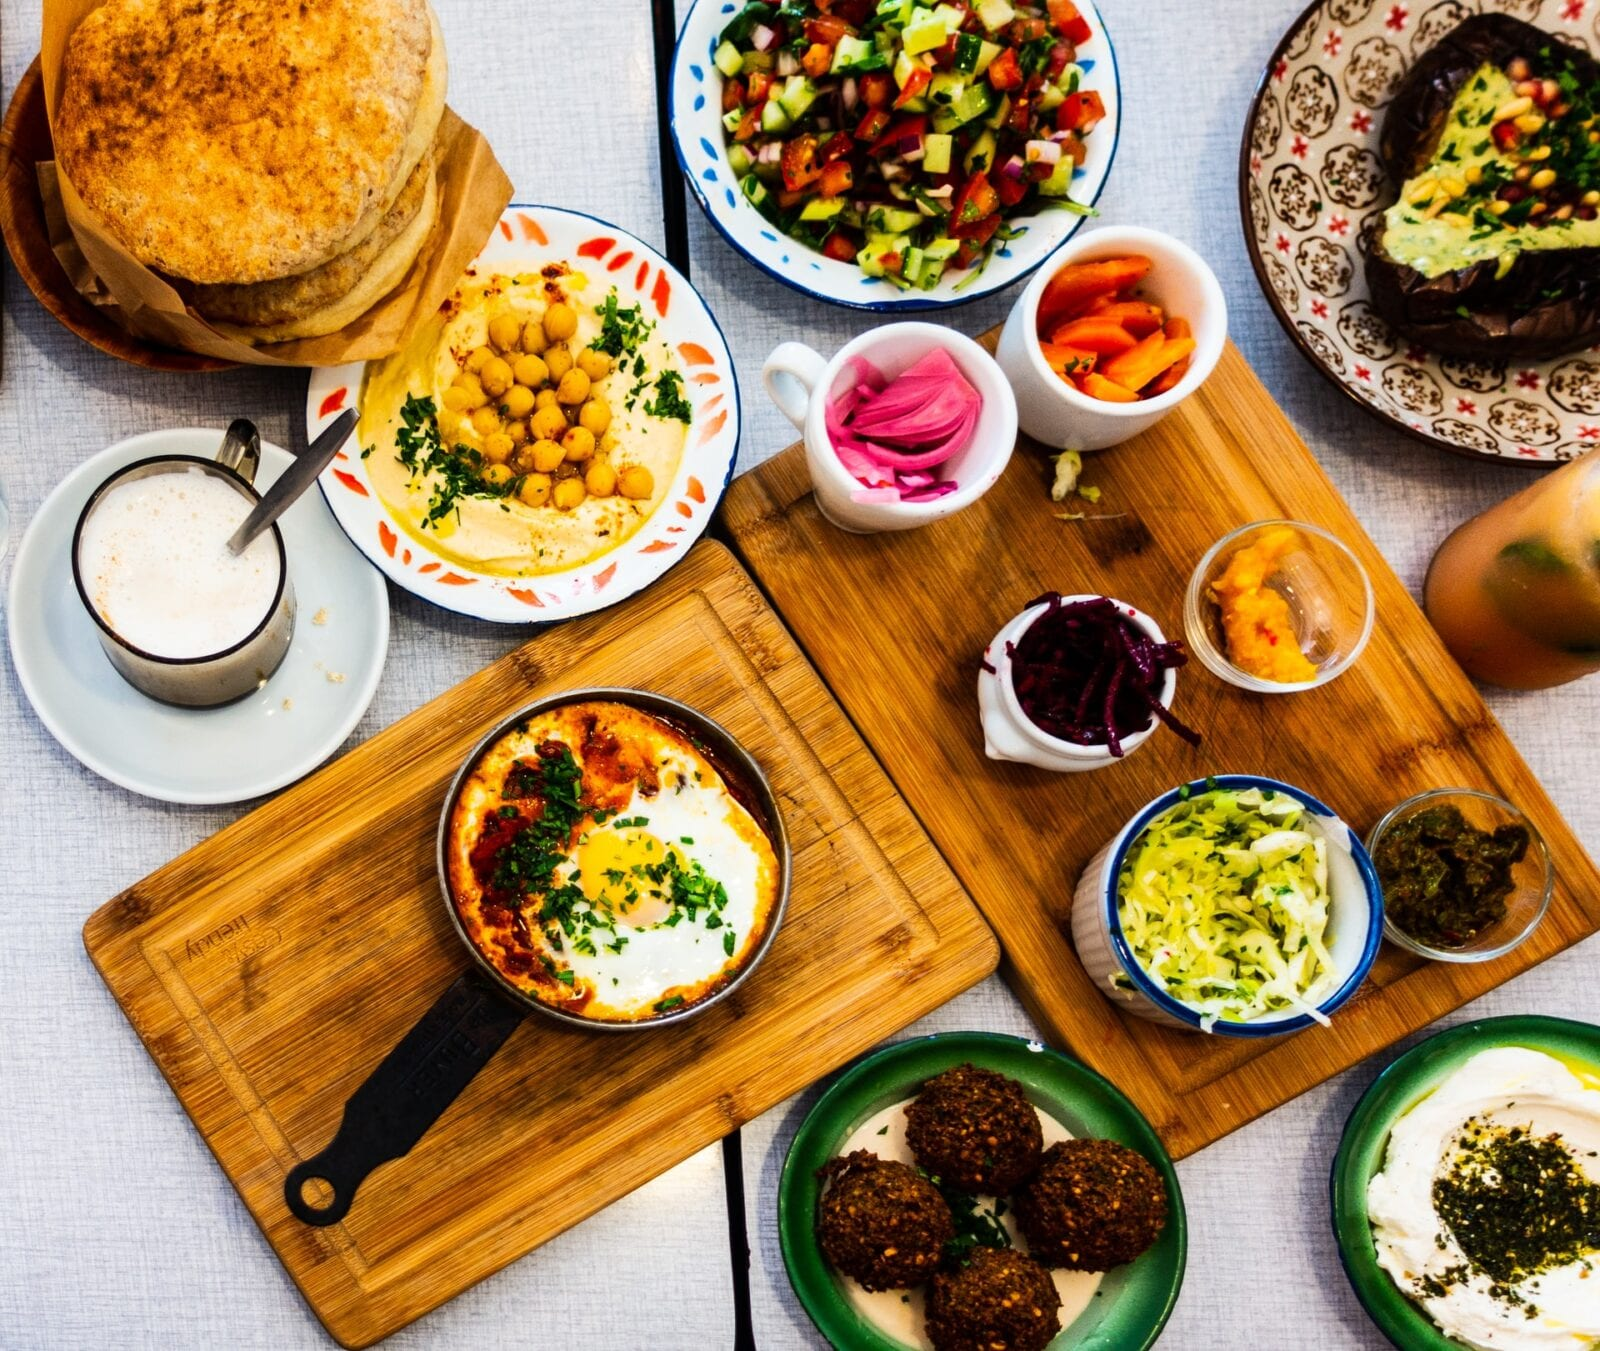 The Eat Out To Help Out App will help diners find great deals on top grub even when the scheme ends, The Manc